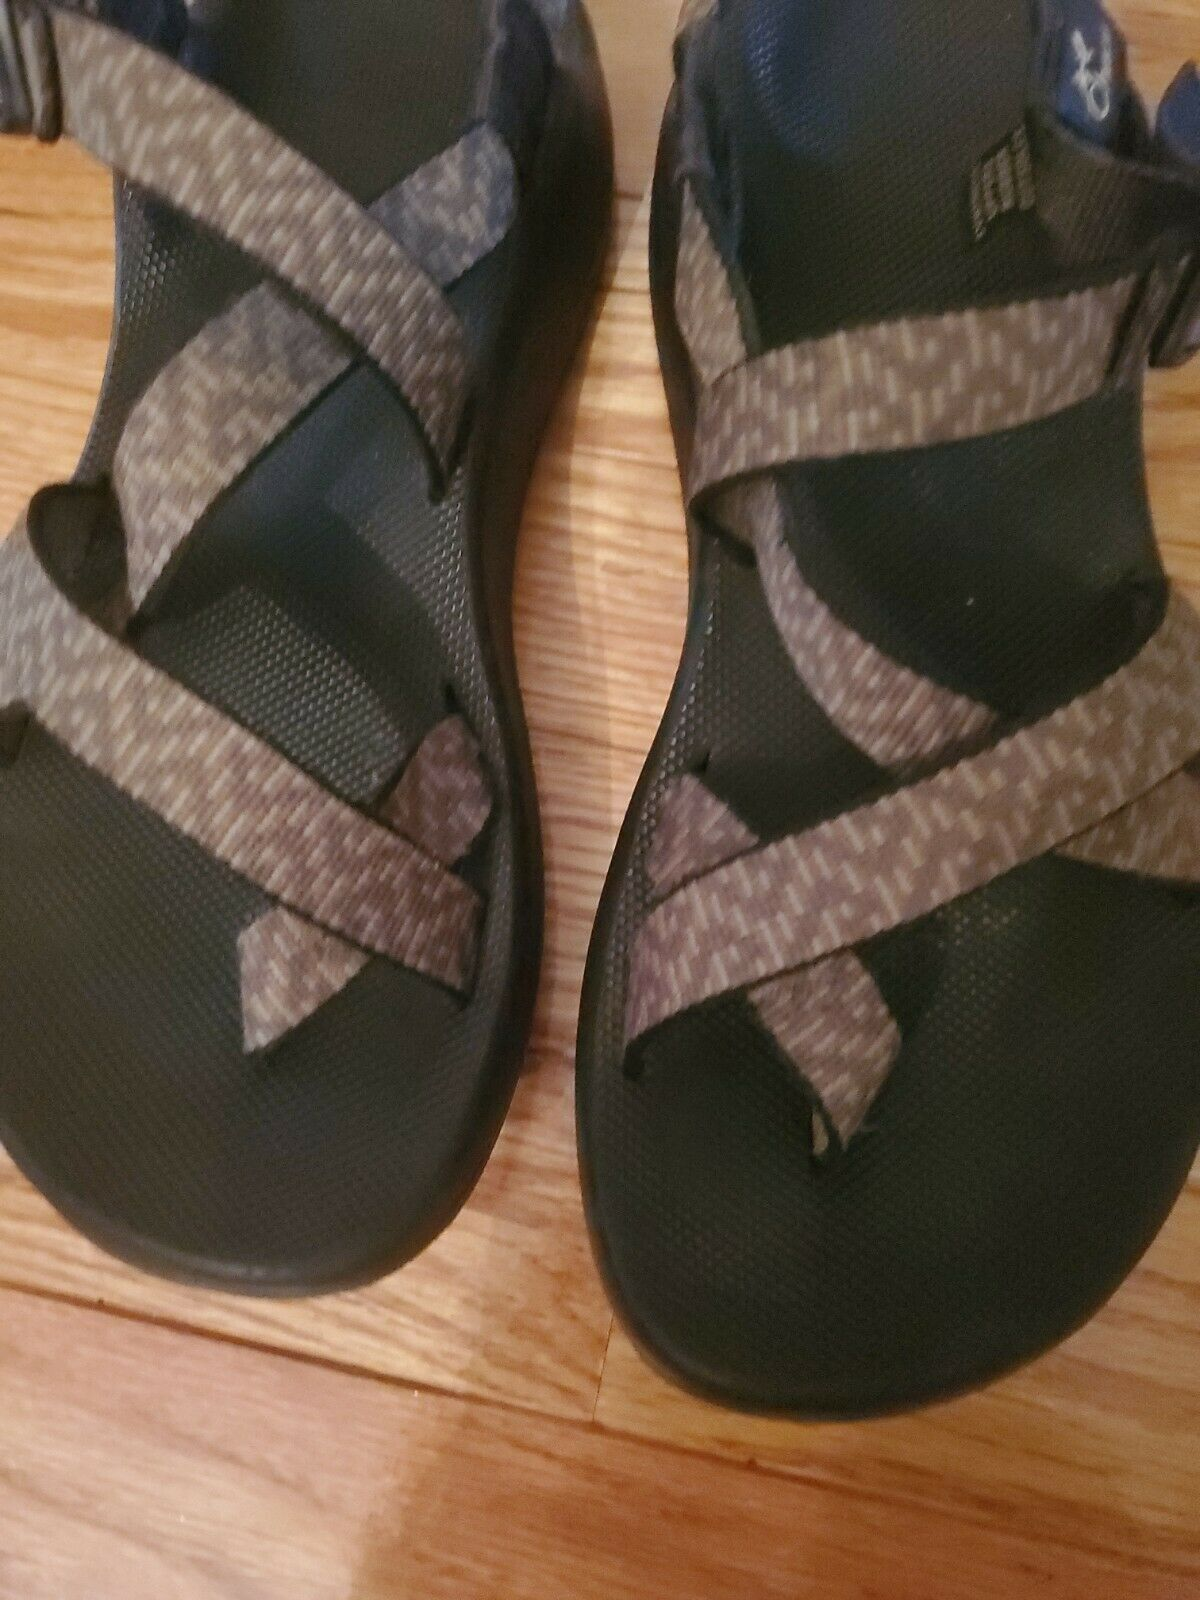 CHACO Women's Size 8 Strappy Sandals - image 5